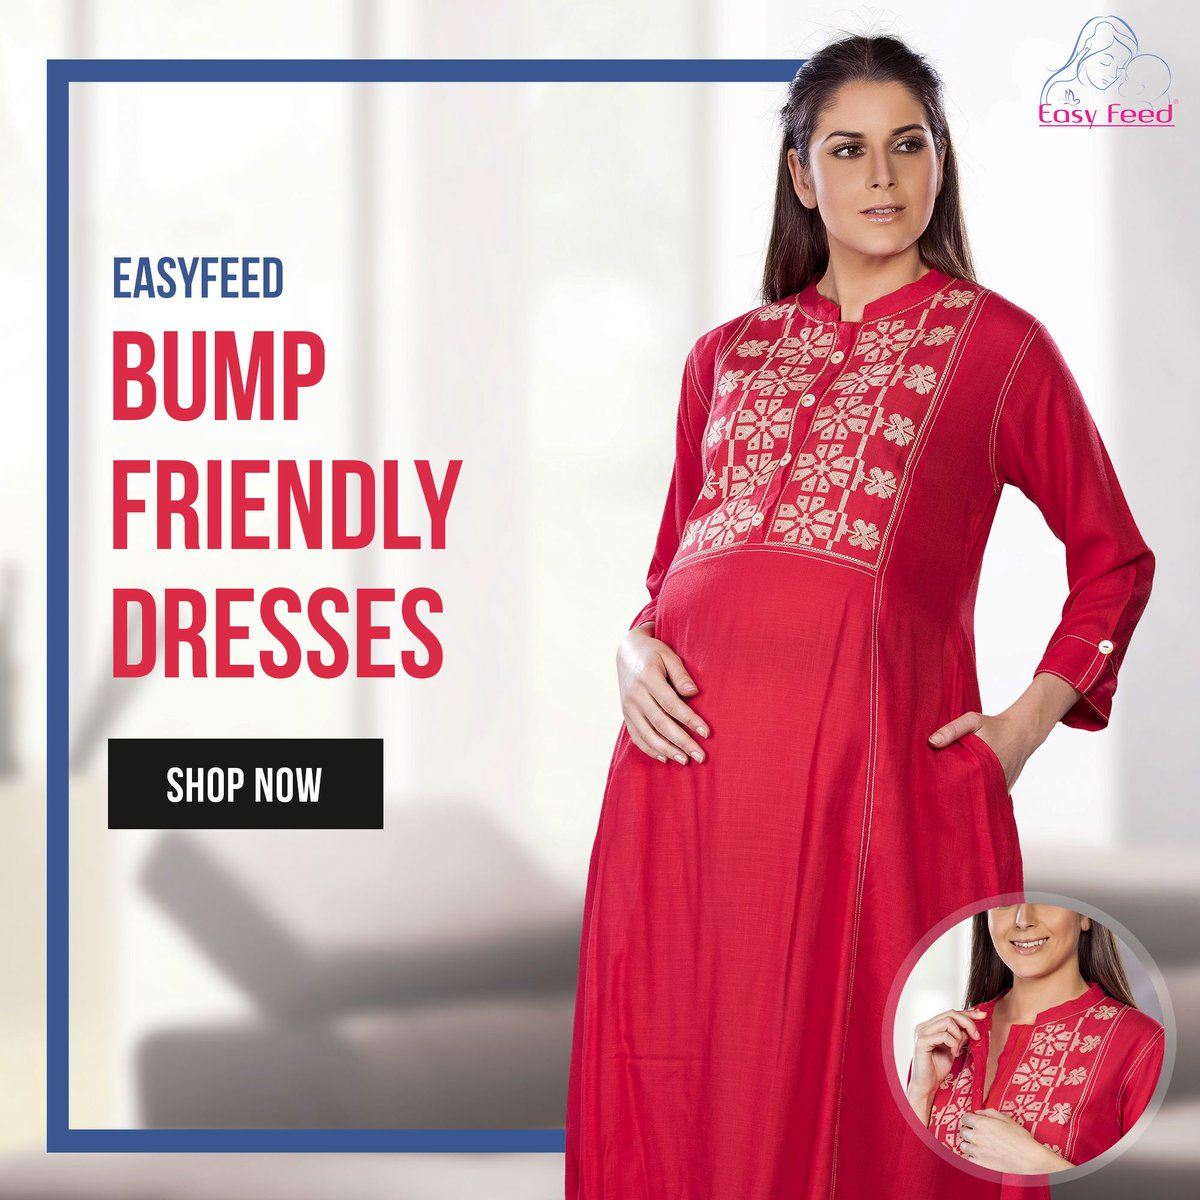 Bump-friendly dresses. Dresses that are designed to flatter your bump throughout your pregnancy. Shop the look on the Facebook store or visit our website http://www.easyfeed.in  #EasyFeed #momtobe #moms #maternitydresses #maternityfashion #maternitystyles #bumpfriendly #preggerspic.twitter.com/xW88N5QSKb